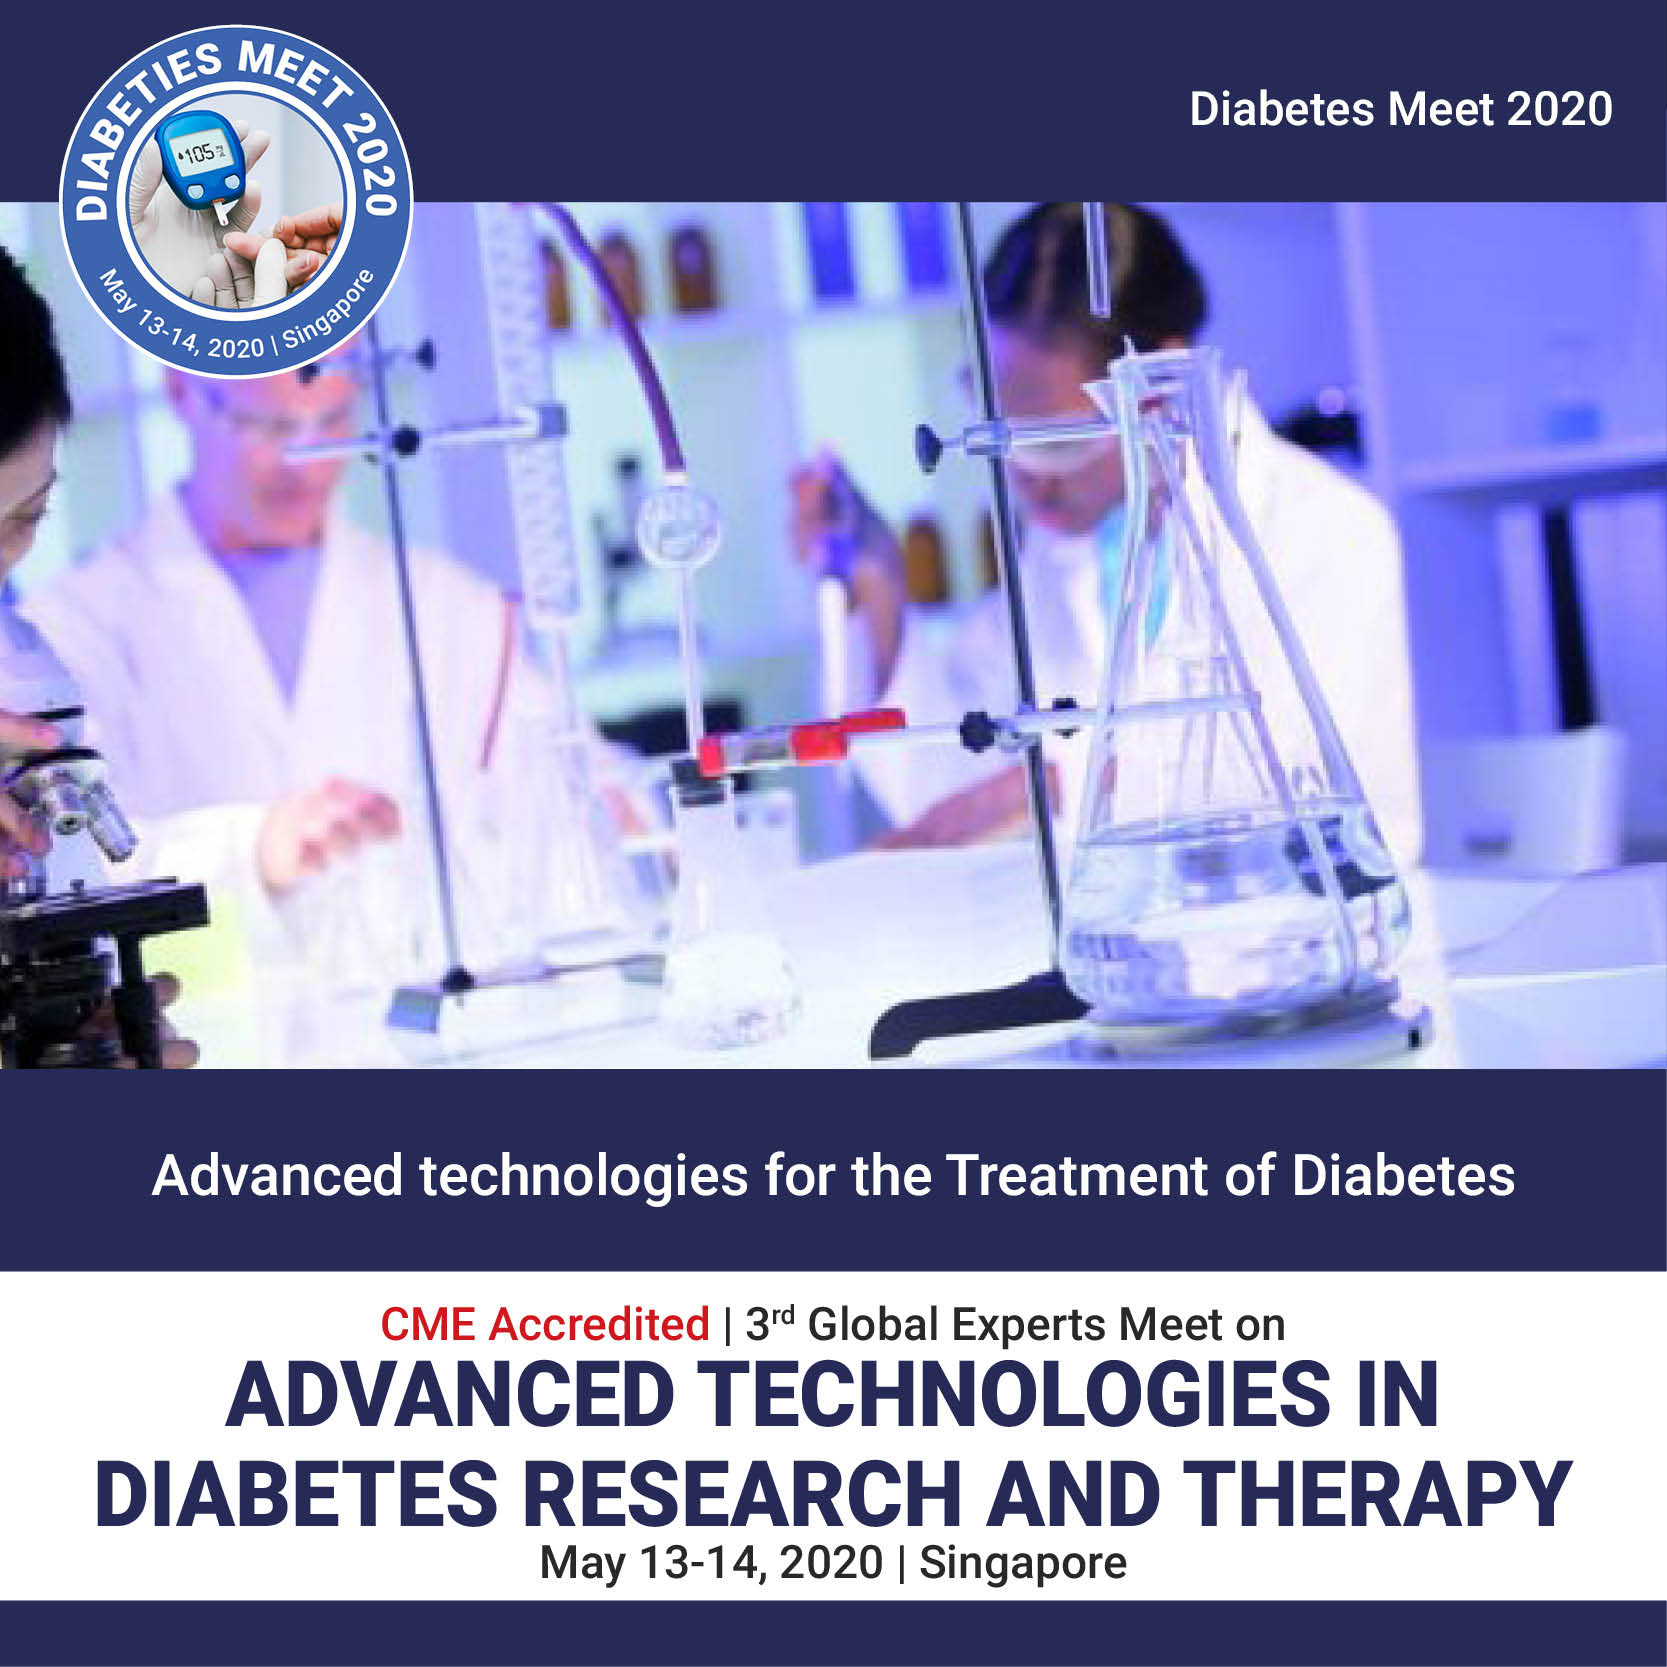 Advanced technologies for the treatment of diabetes Photo